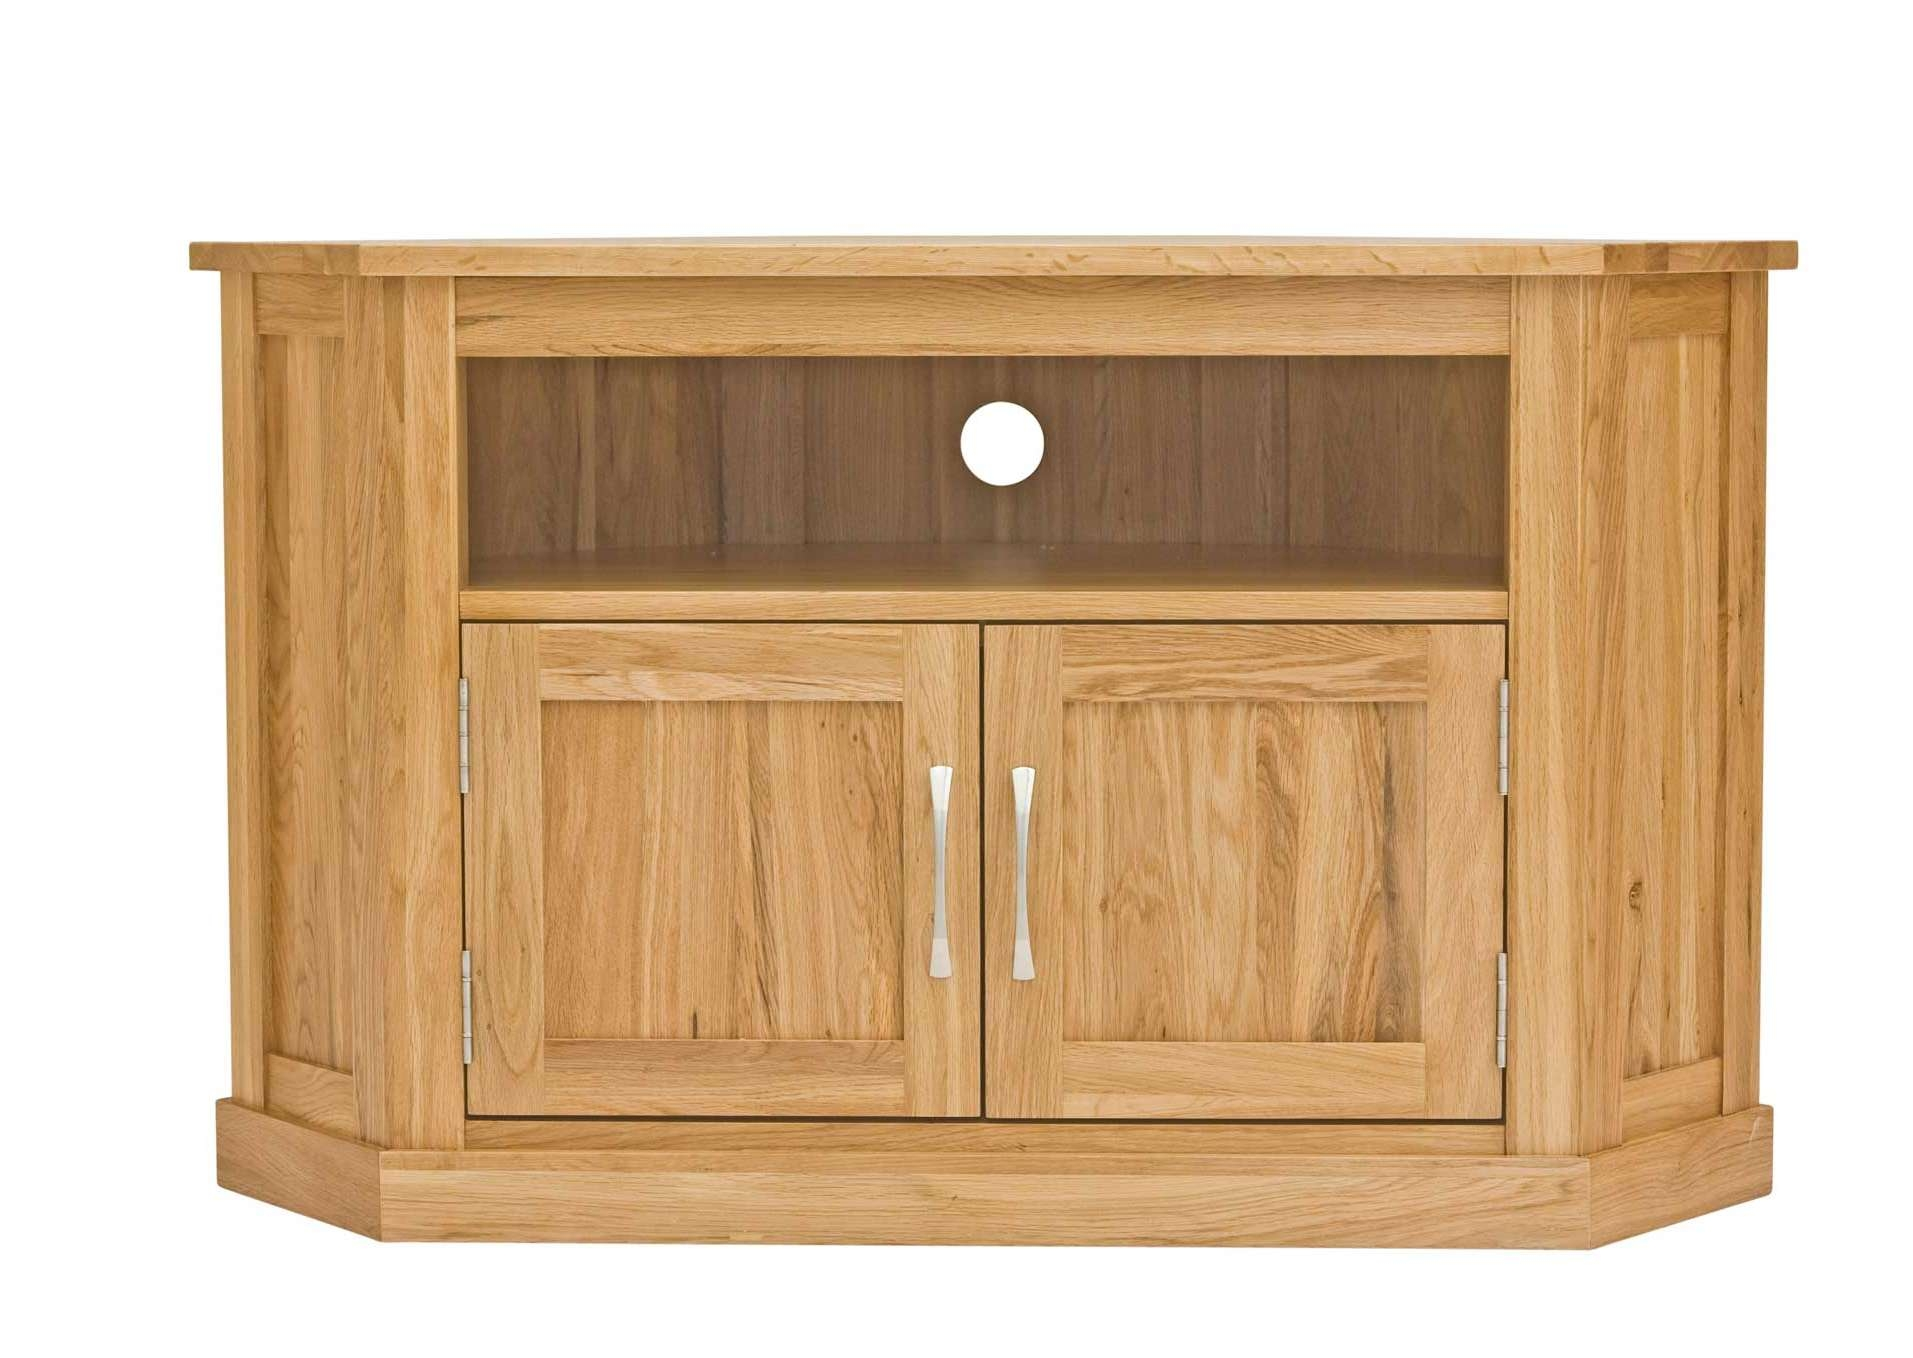 Classic Oak Corner Television Cabinet | Hampshire Furniture Within Tv Cabinets Corner Units (View 2 of 20)